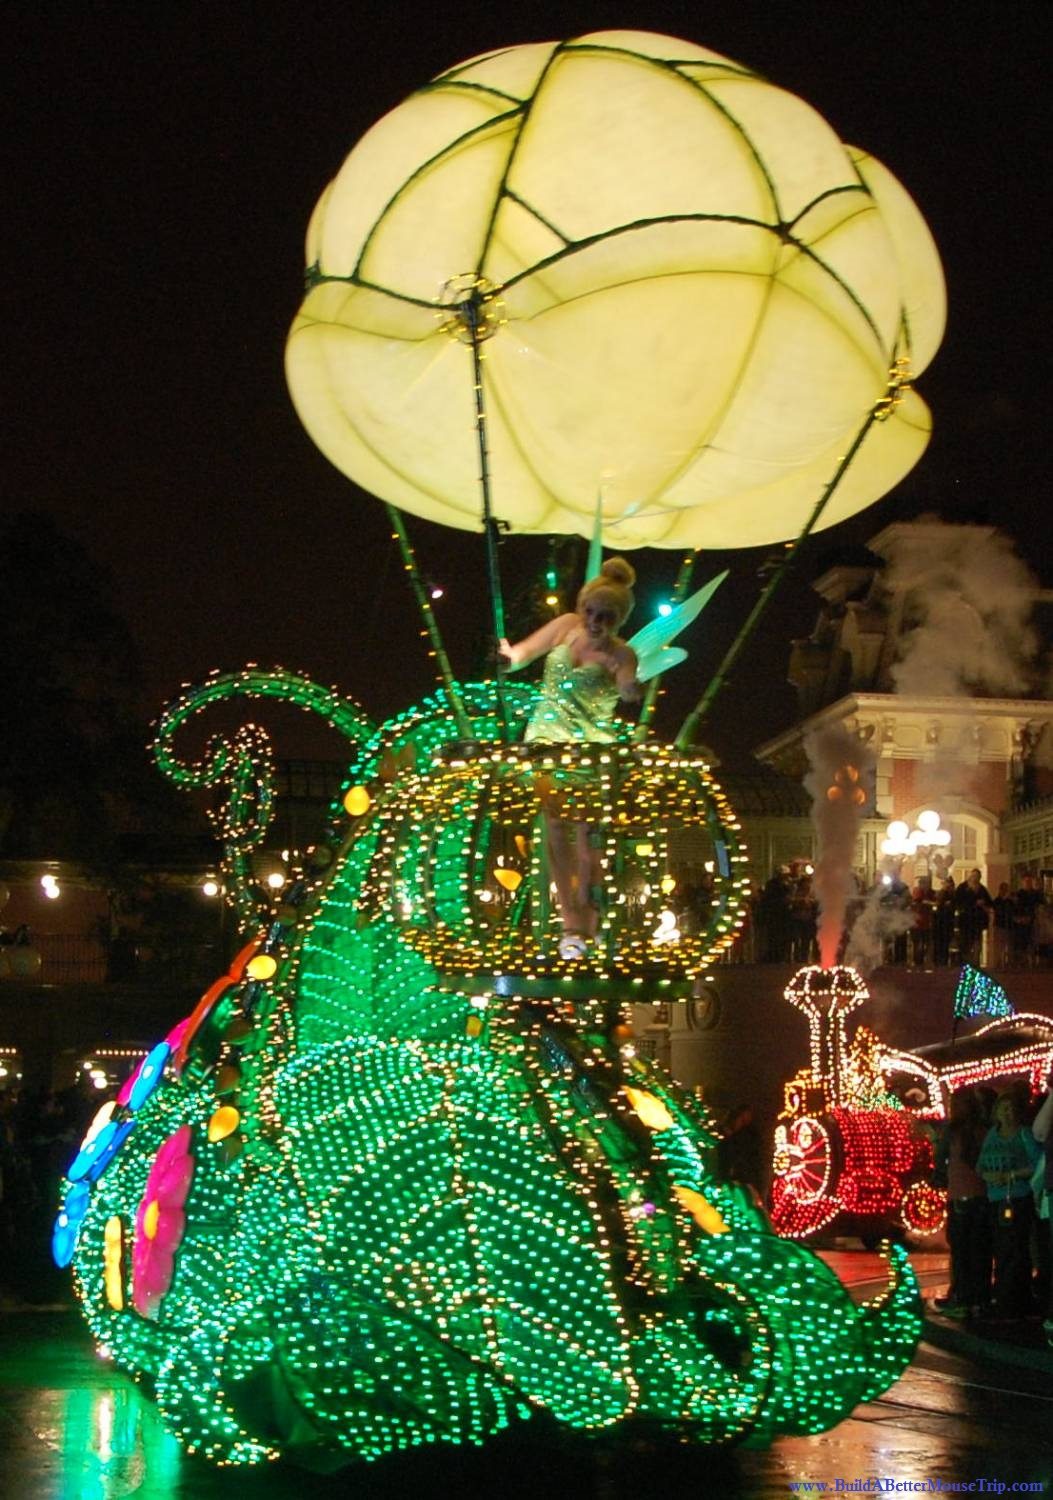 Tips for seeing Tinker Bell at Disney World - TinkerBell Float in the Main Street Electrical Parade in the Magic Kingdom .